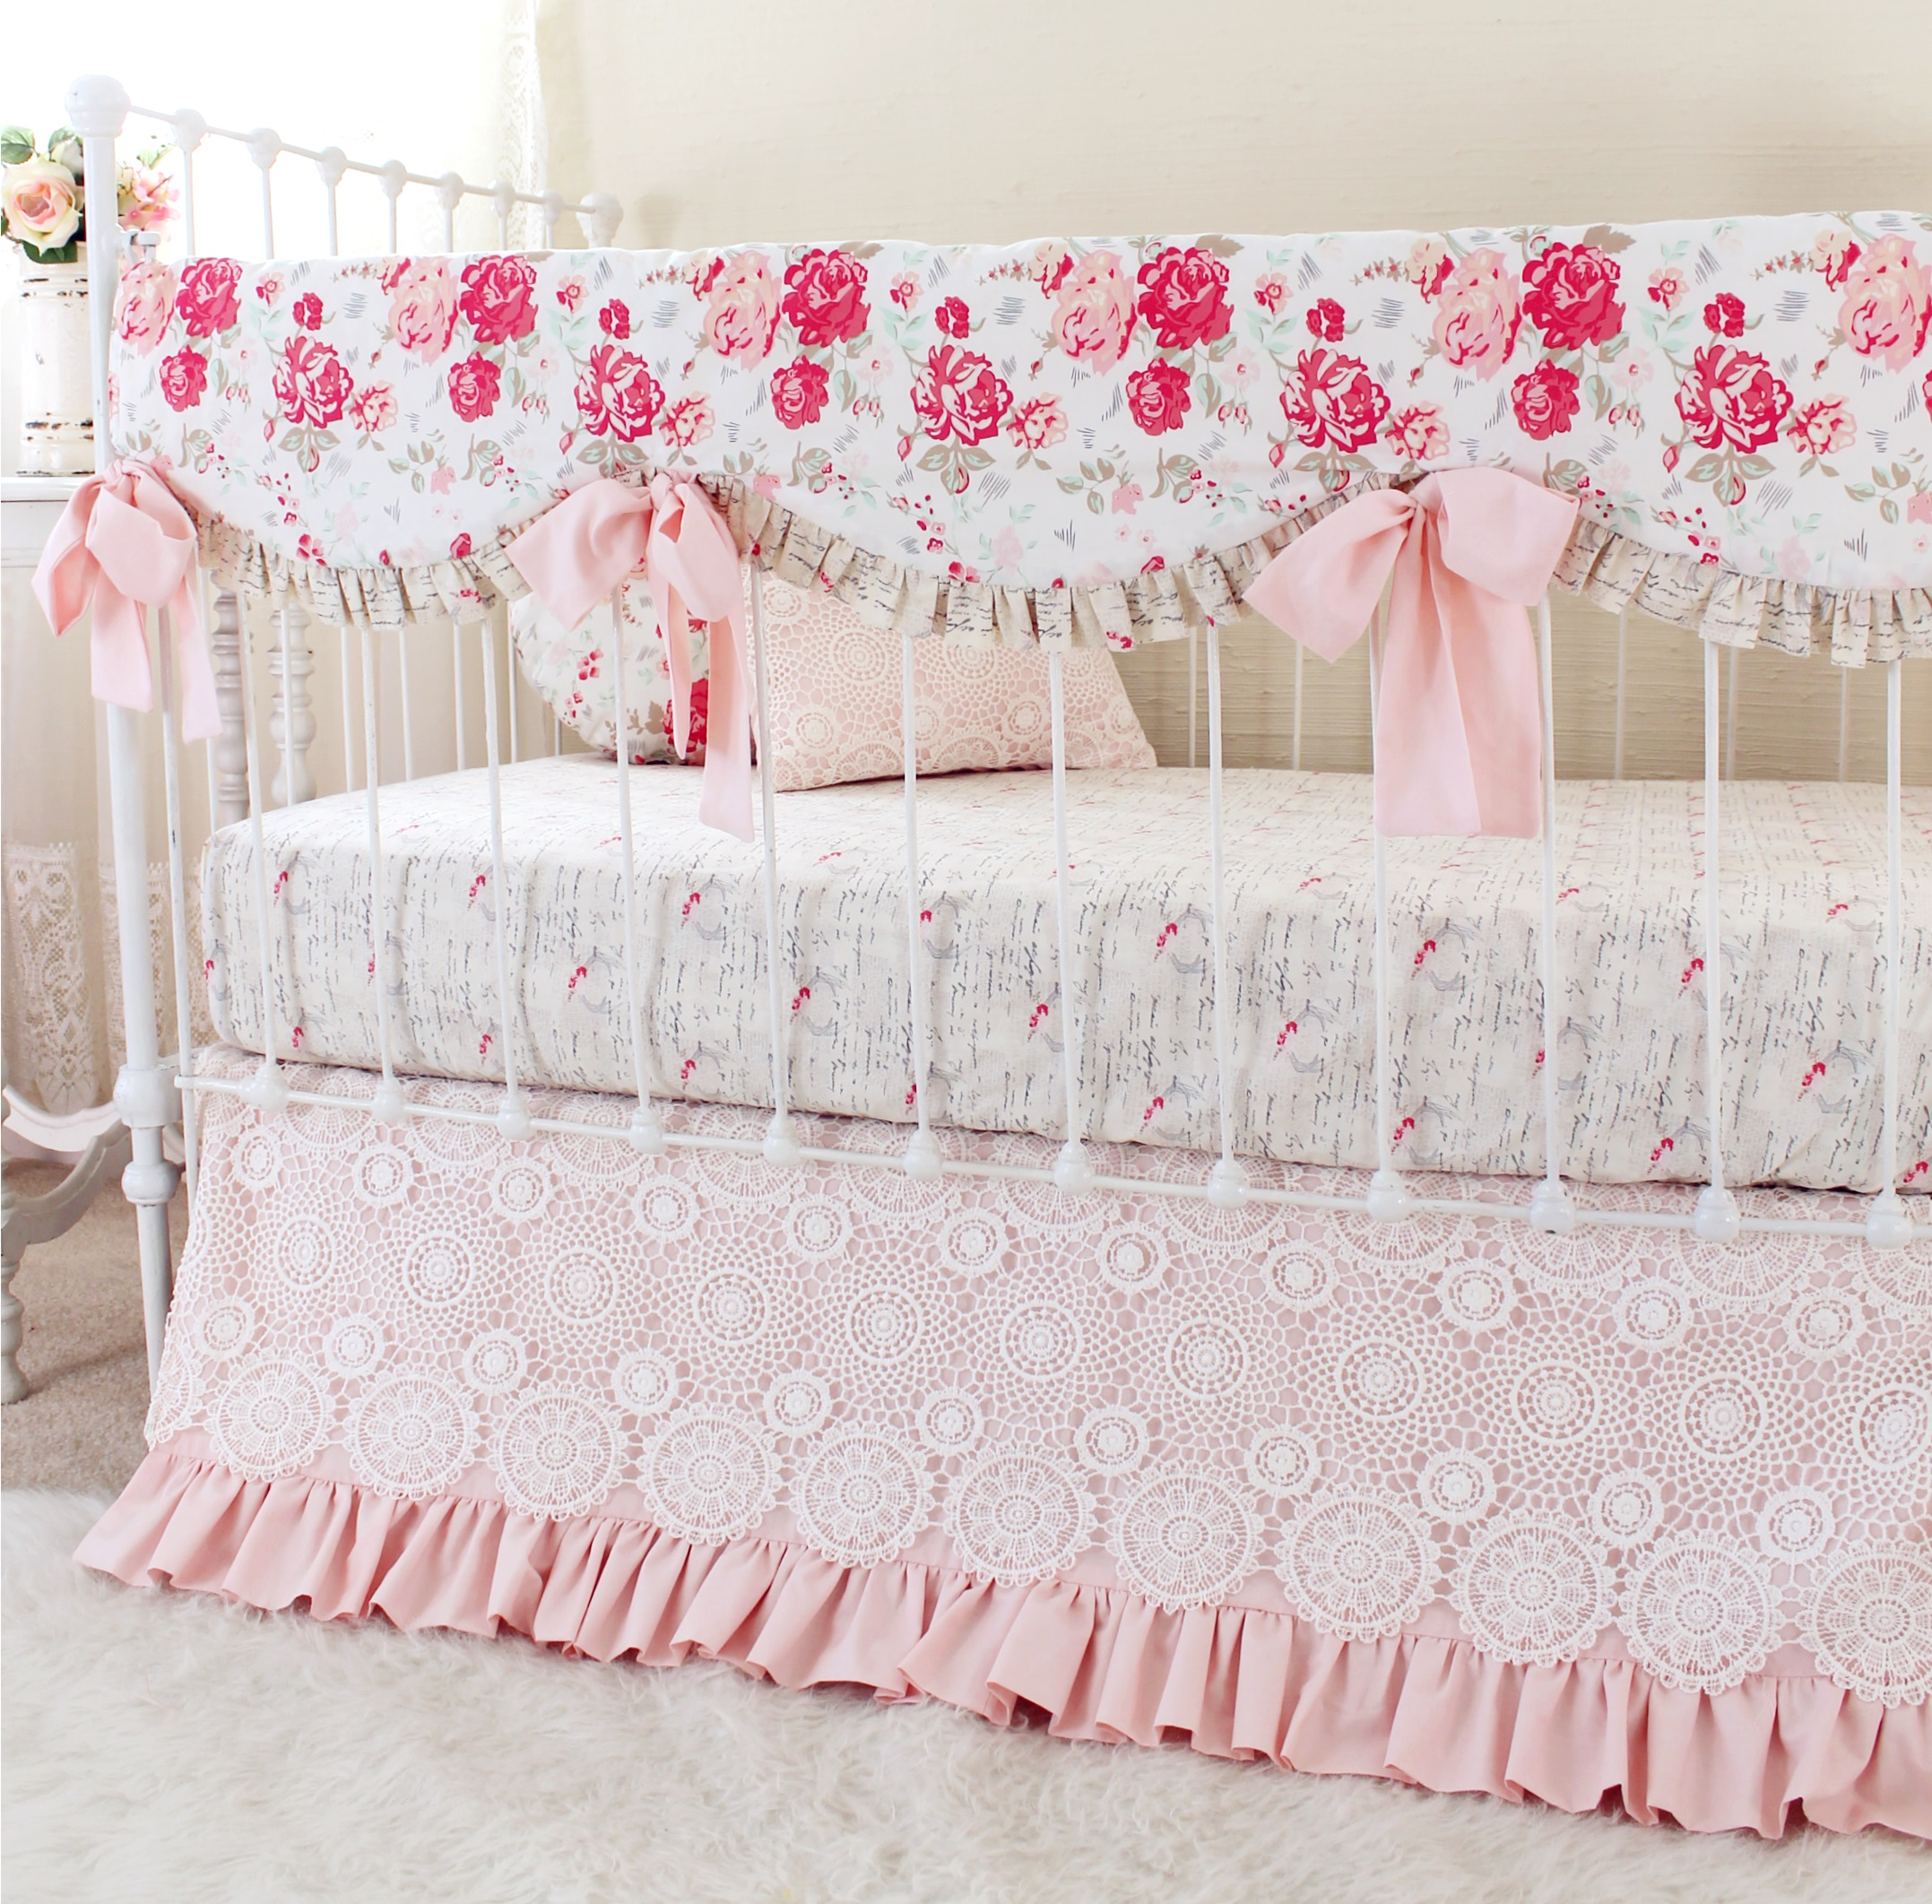 Vintage Chic Pink Rail Cover Bumperless Bedding Lottie